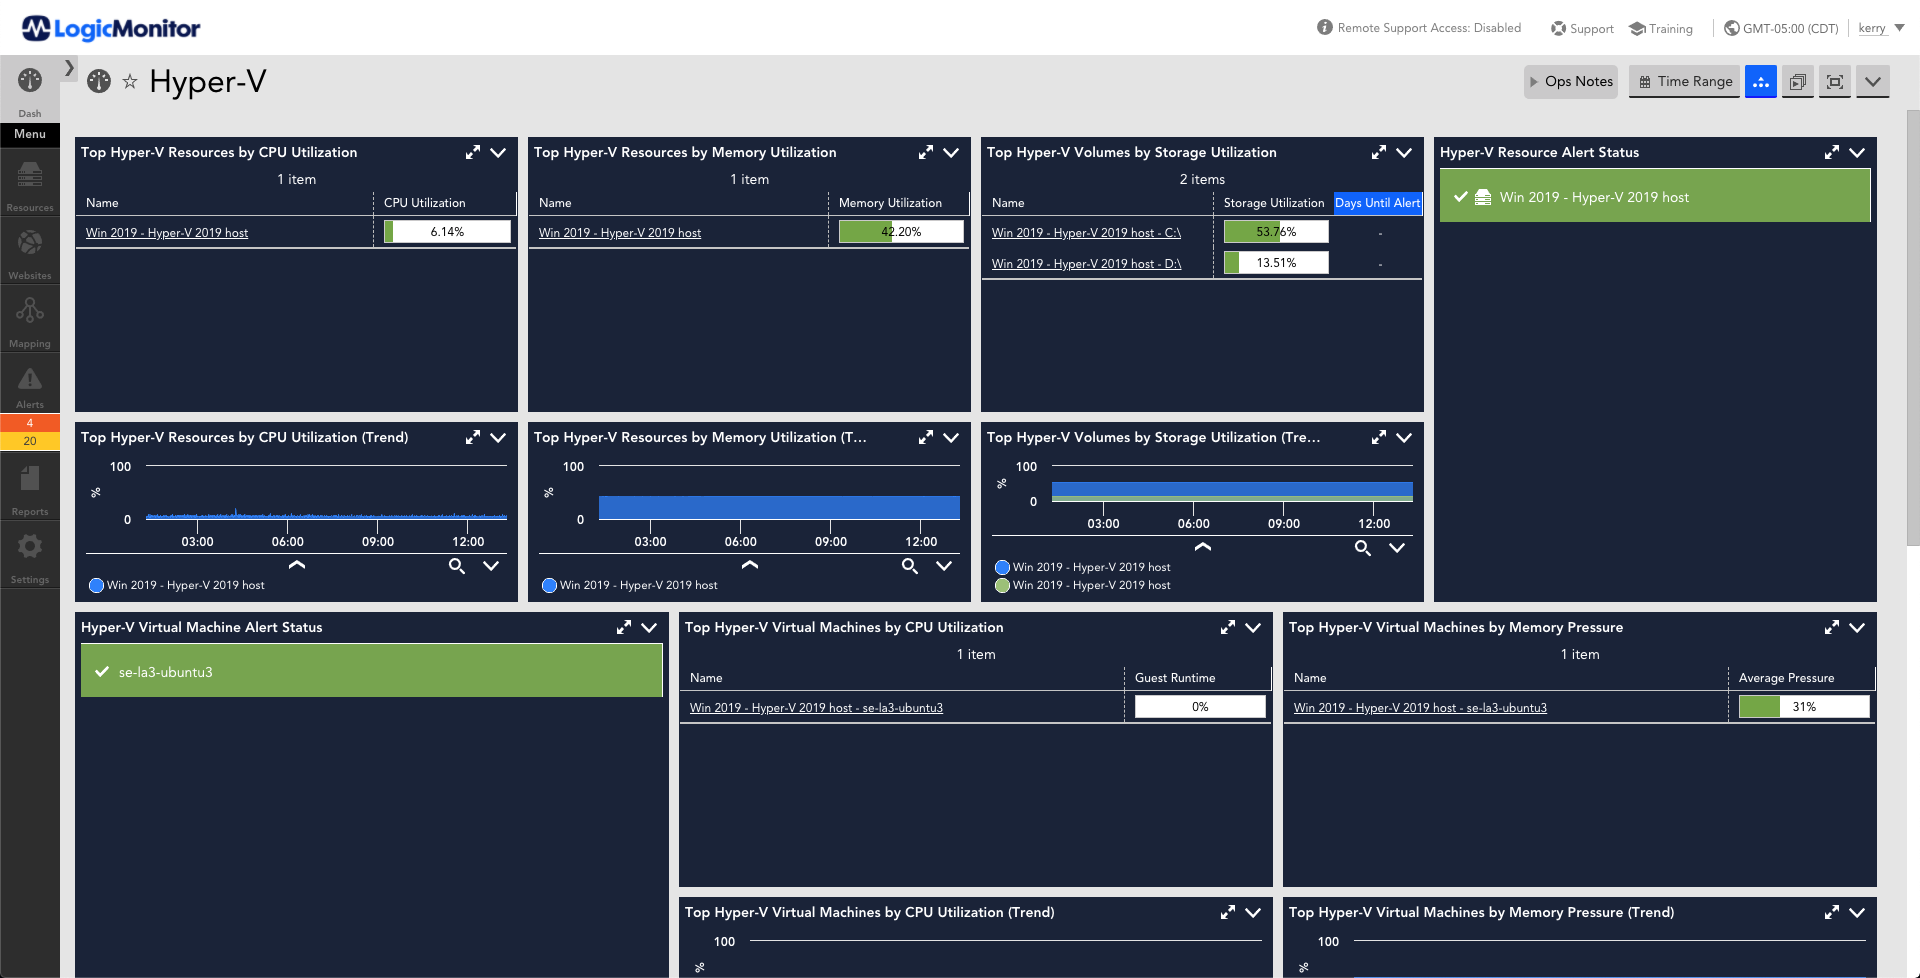 http://This%20dashboard%20provides%20an%20a%20listing%20of%20various%20metrics%20that%20are%20monitored%20for%20Microsoft%20Hyper-V%20The%20metrics%20displayed%20are%20real-time%20CPU%20utilization,%20real-time%20memory%20utilization,%20real-time%20storage%20utilization,%20status,%20CPU%20utilization%20over%20time,%20memory%20utilization%20over%20time,%20storage%20utilization%20over%20time